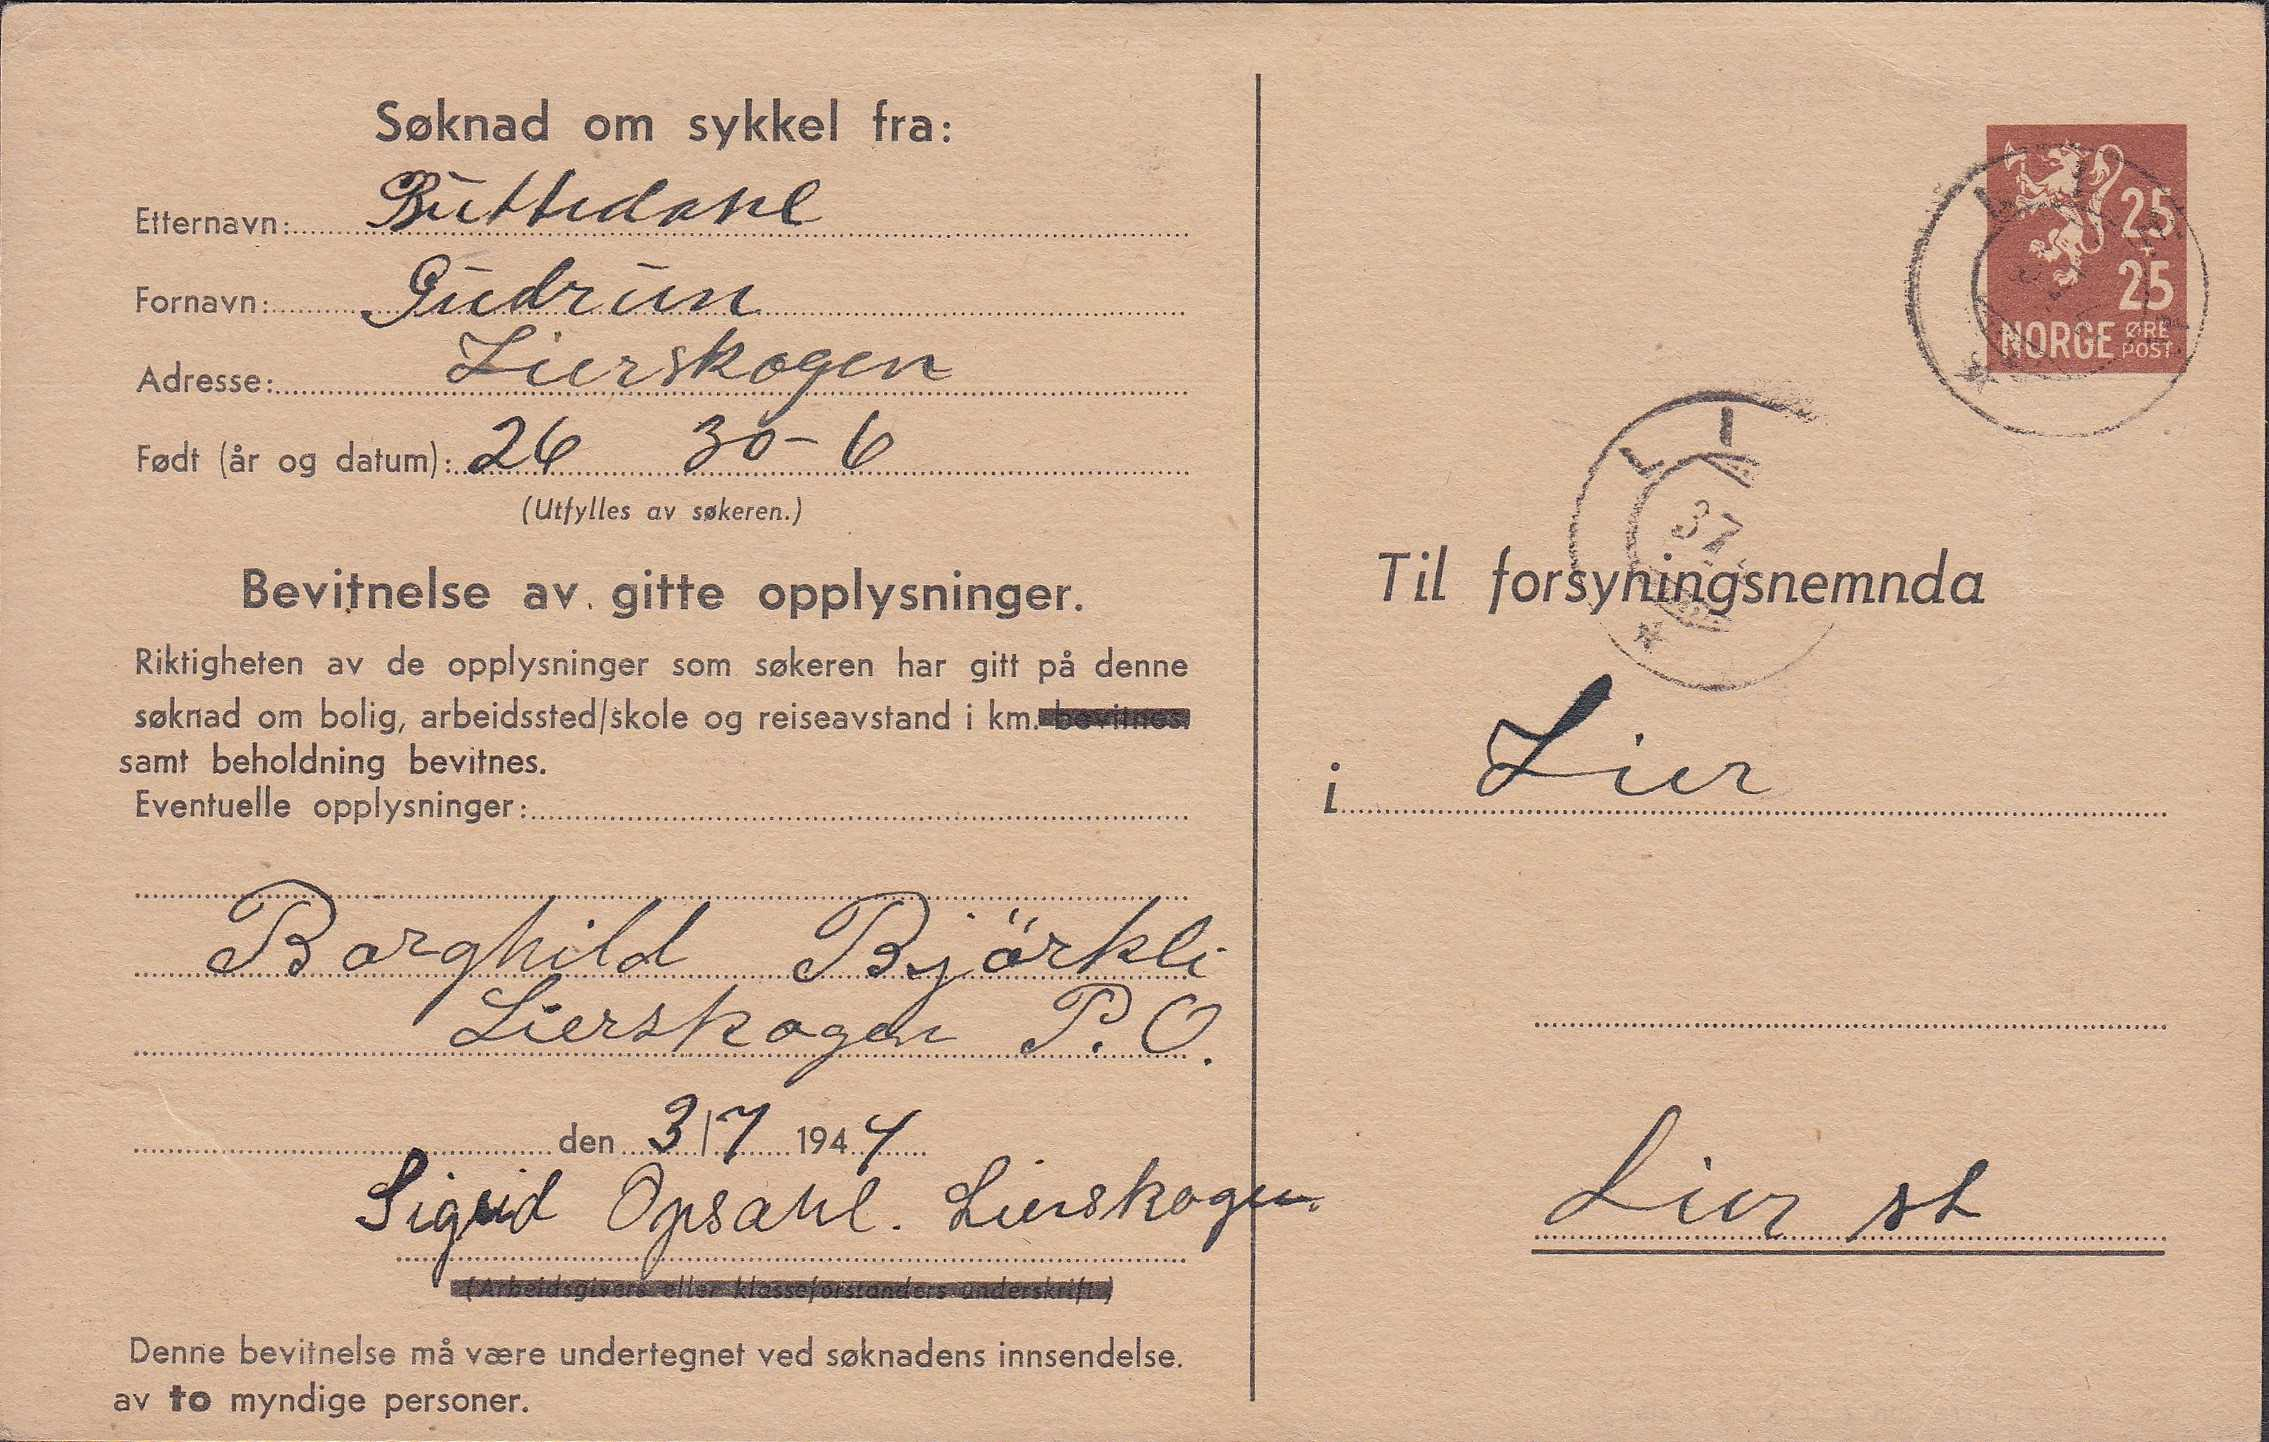 norway-wwii- soknad-sykkel-sample-postal-stationery-application-card-bicycle-stamps